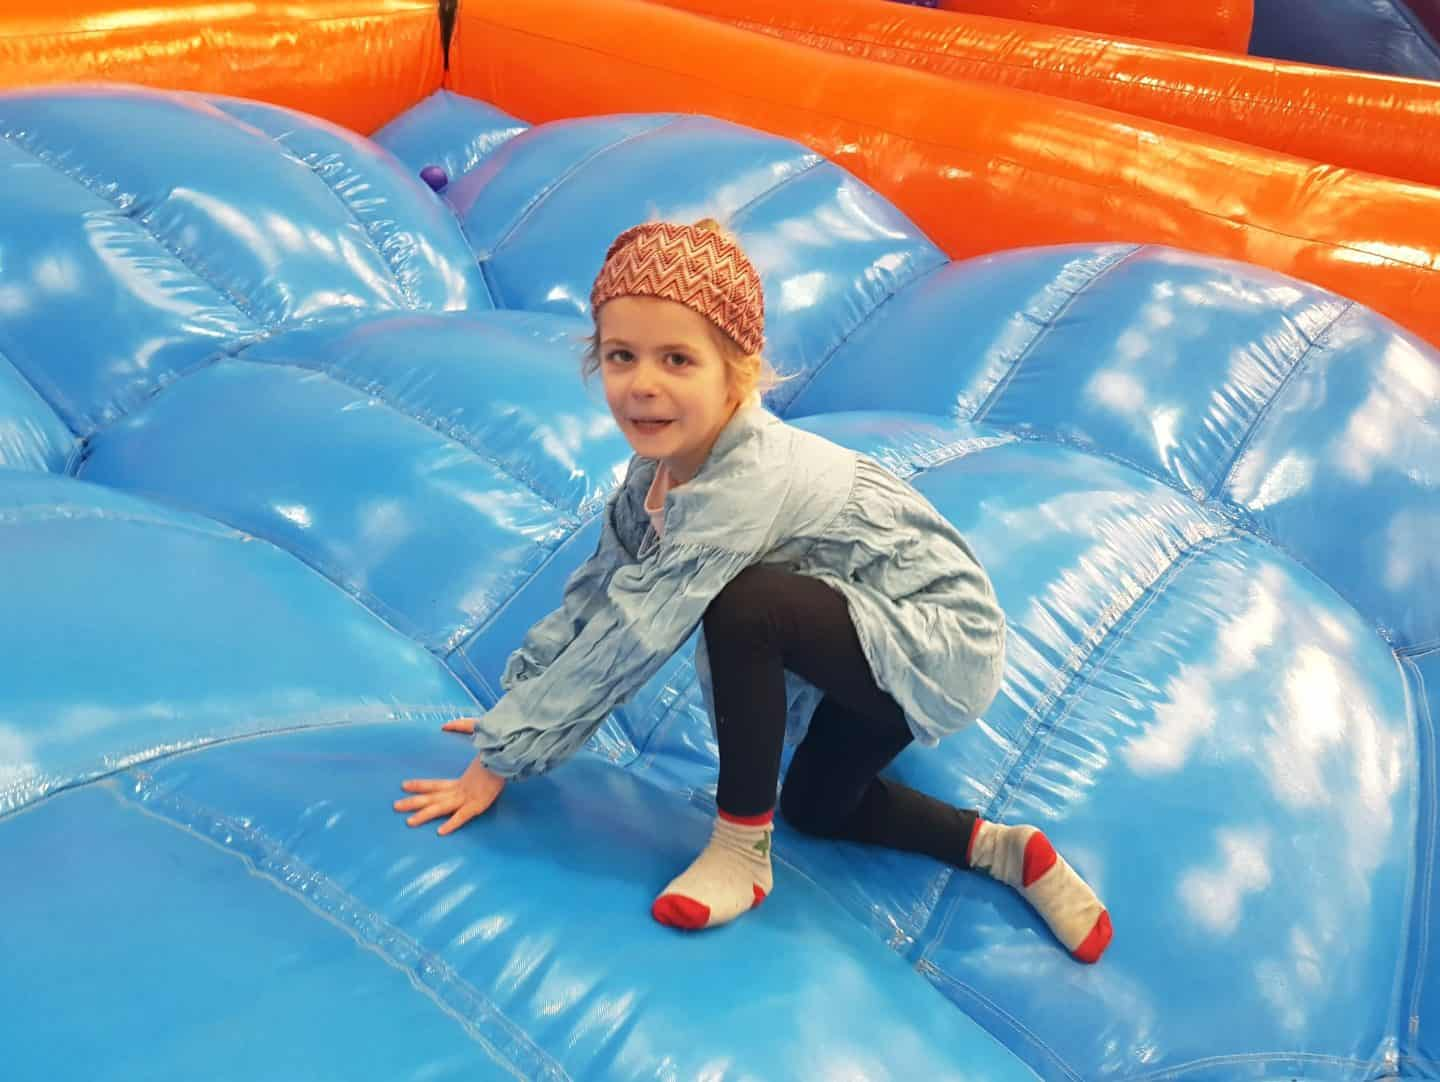 Inflata Nation Birmingham girl on giant bubbles